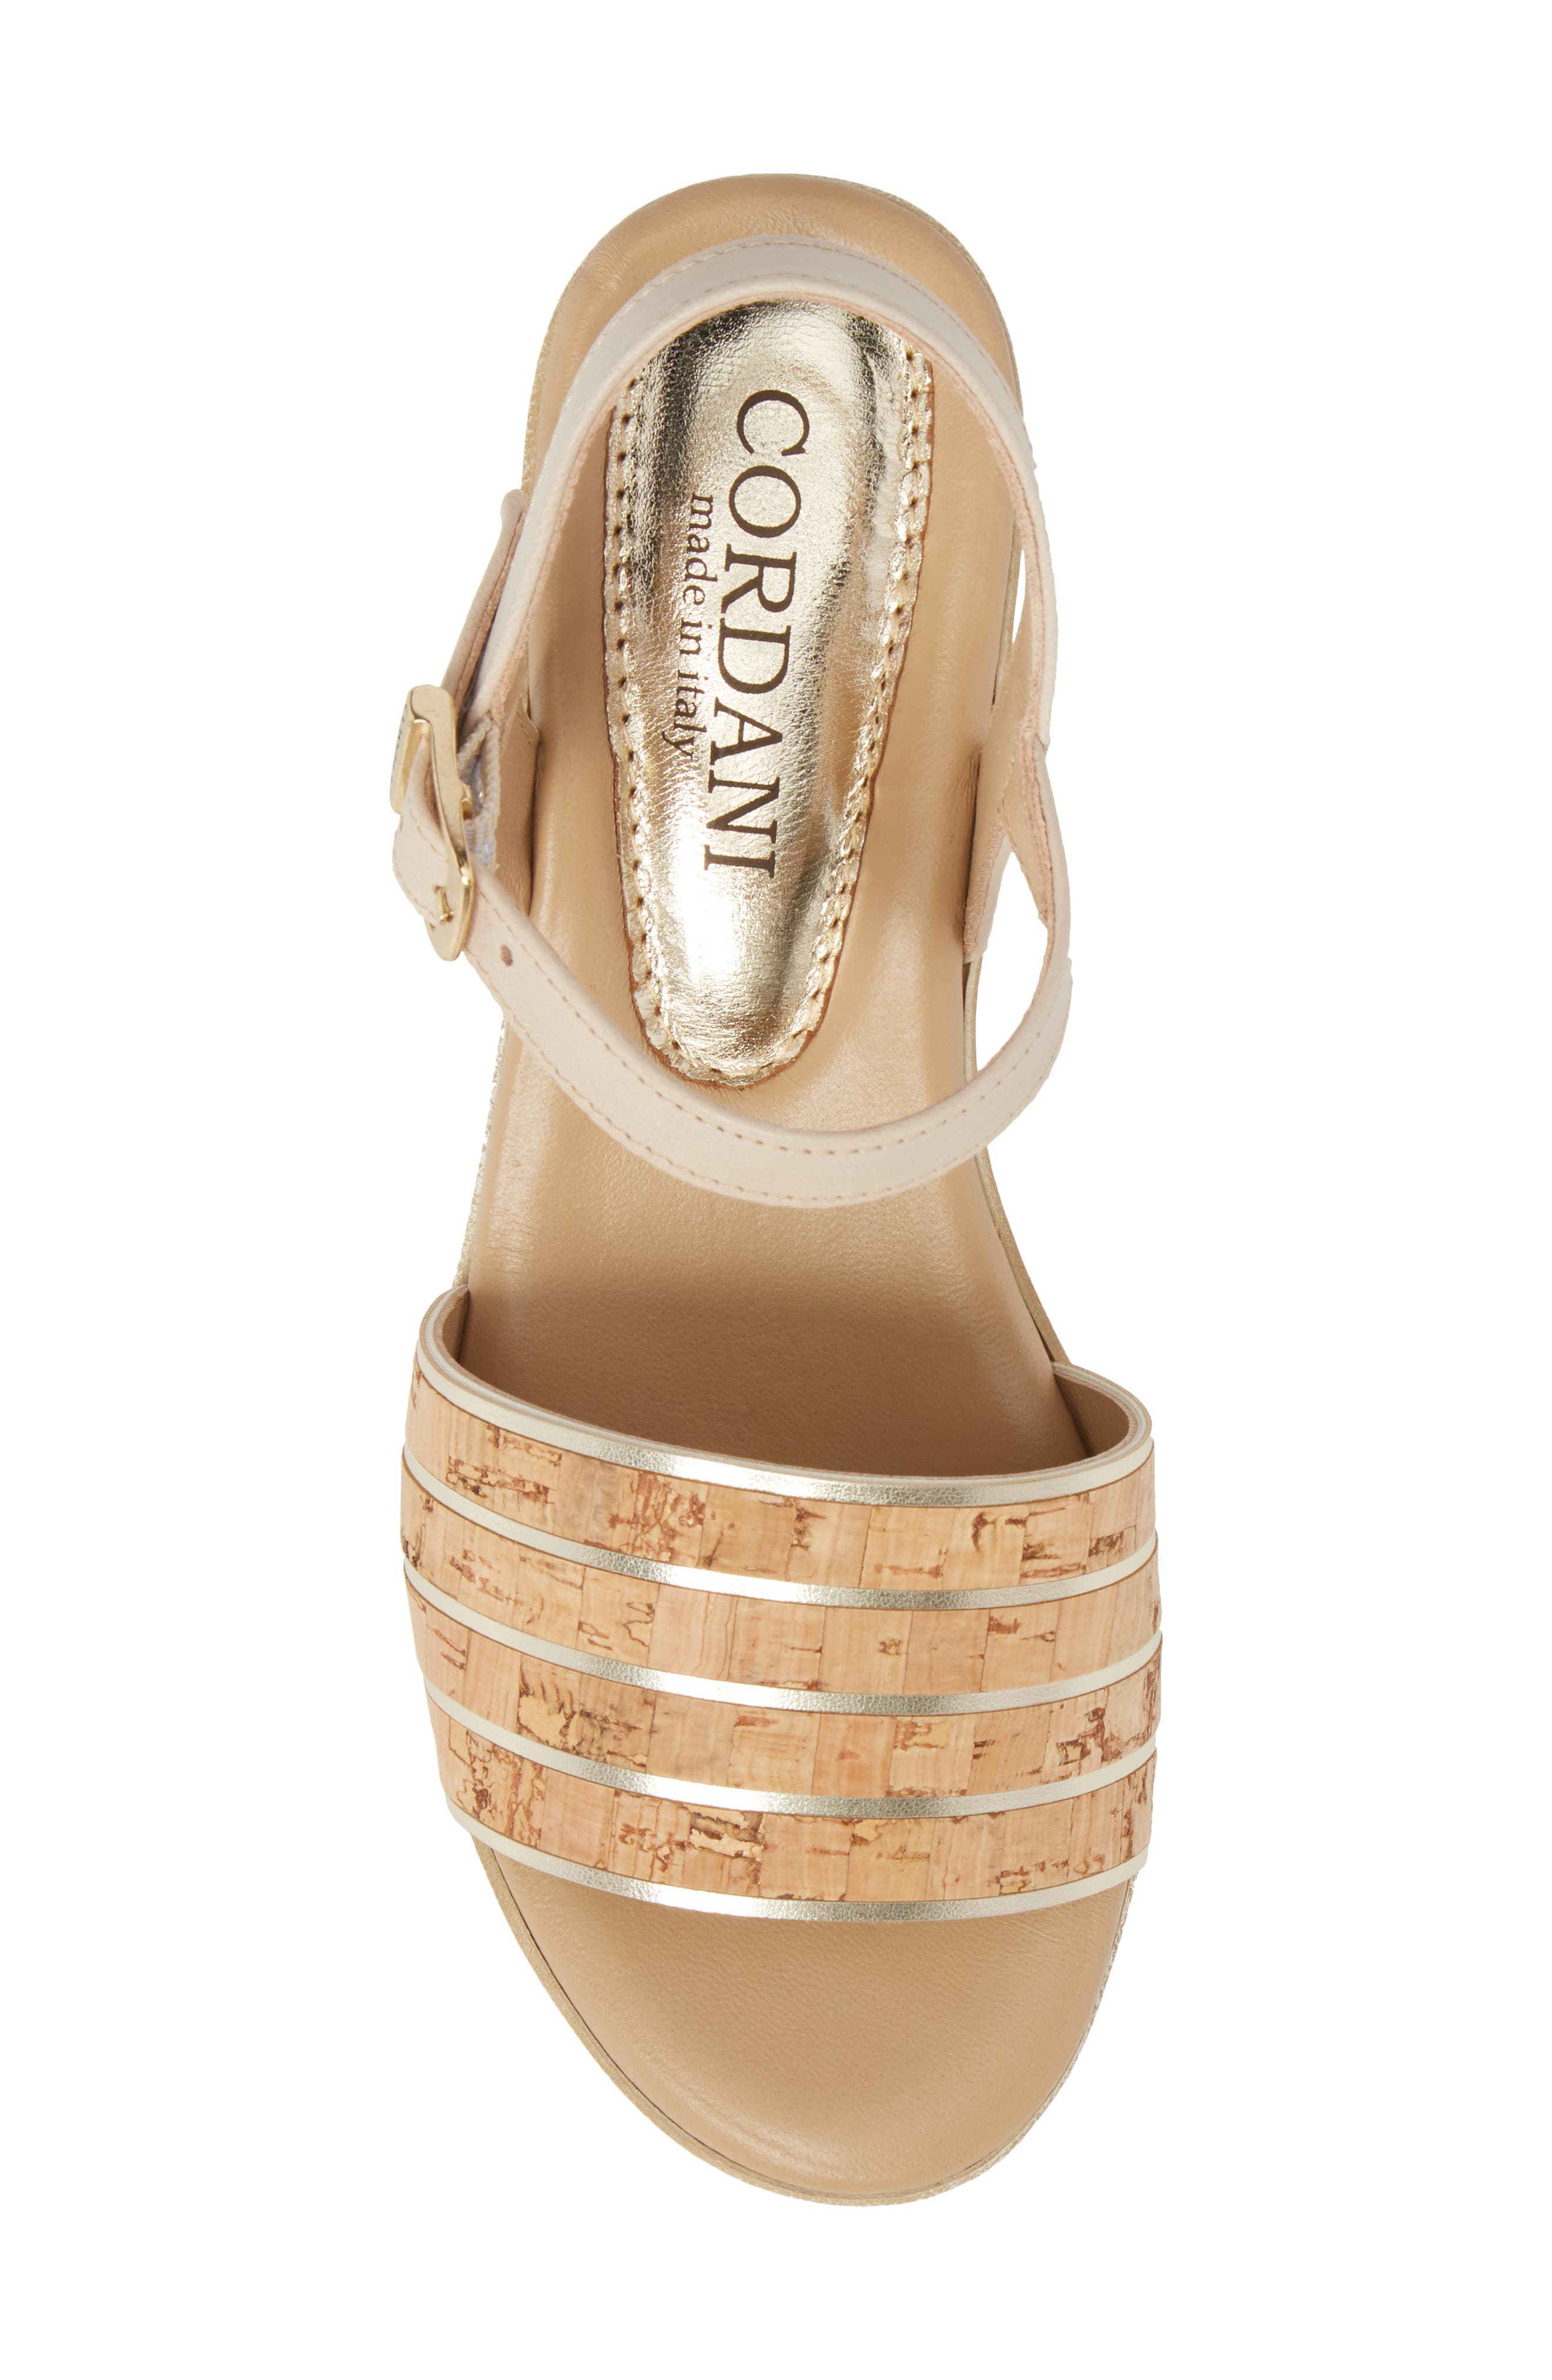 Jaida Platform Wedge Sandal,                             Alternate thumbnail 5, color,                             Cork/ Gold